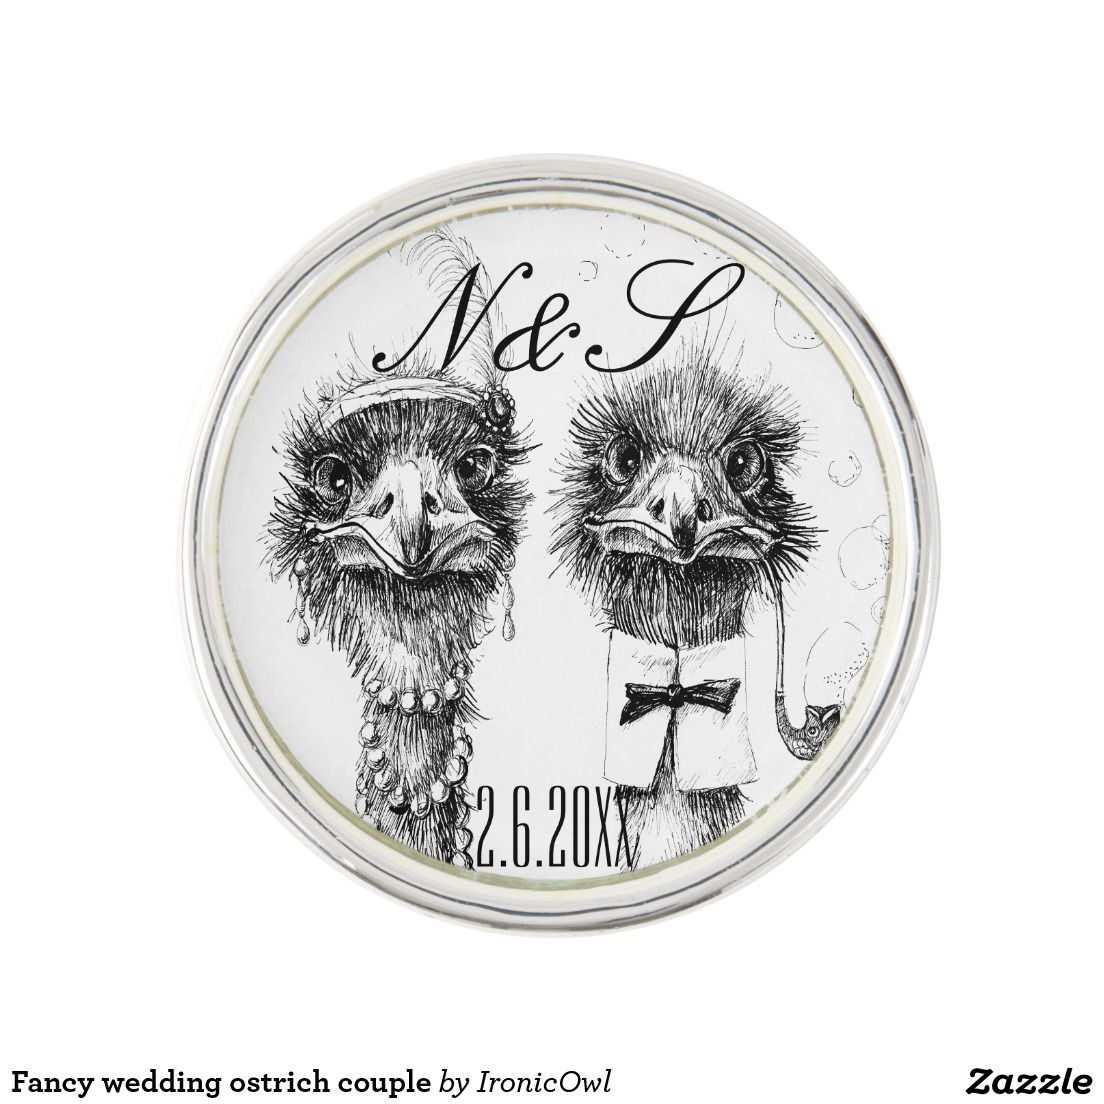 Fancy wedding ostrich couple pin (With images